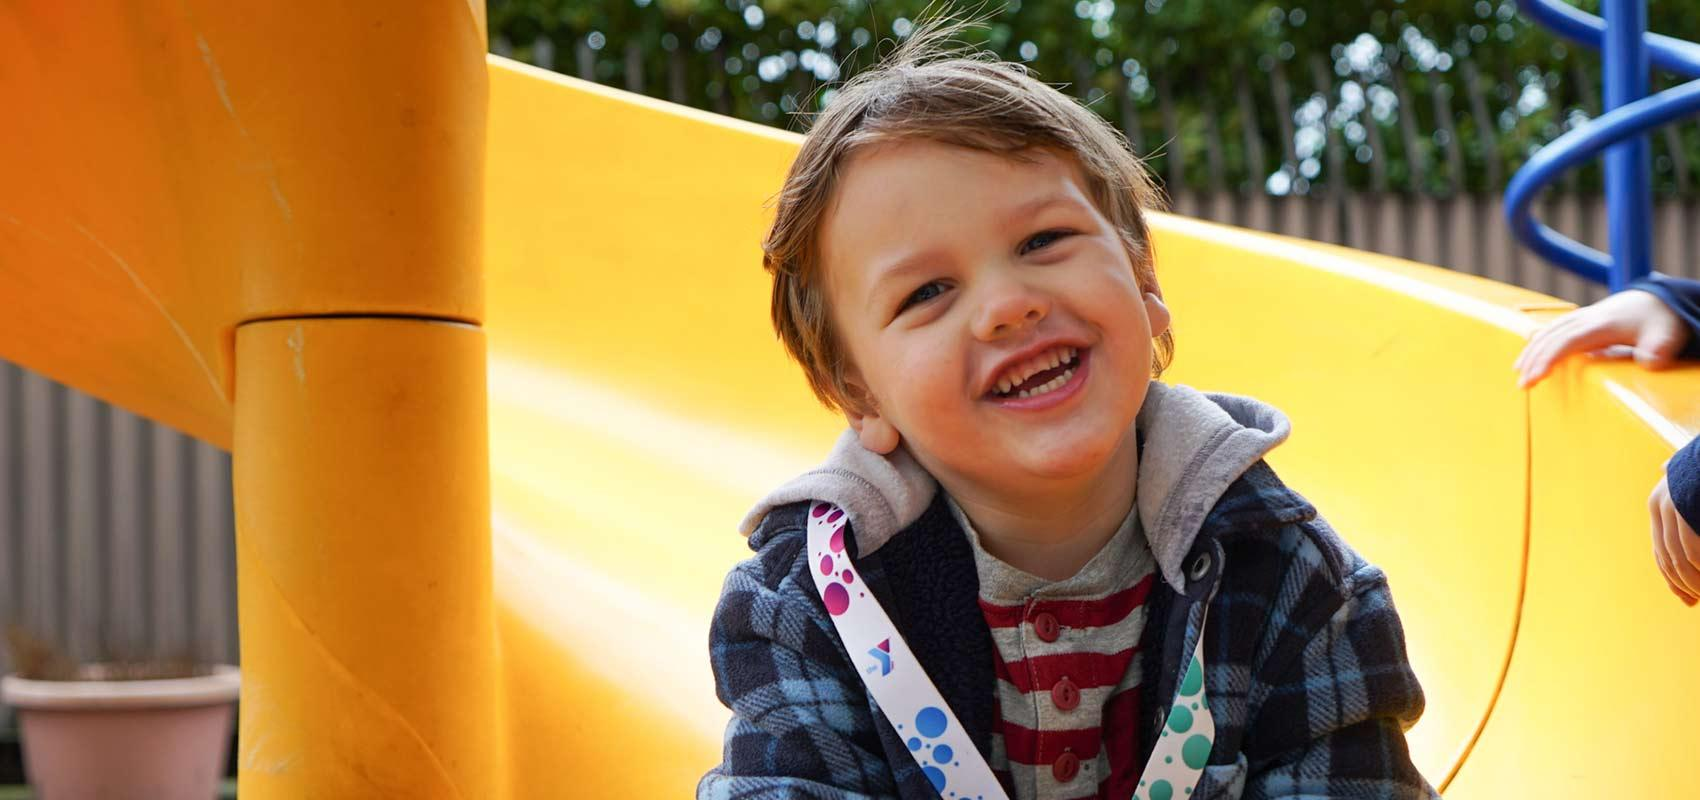 Young boy smiles as he sits on slide at playground